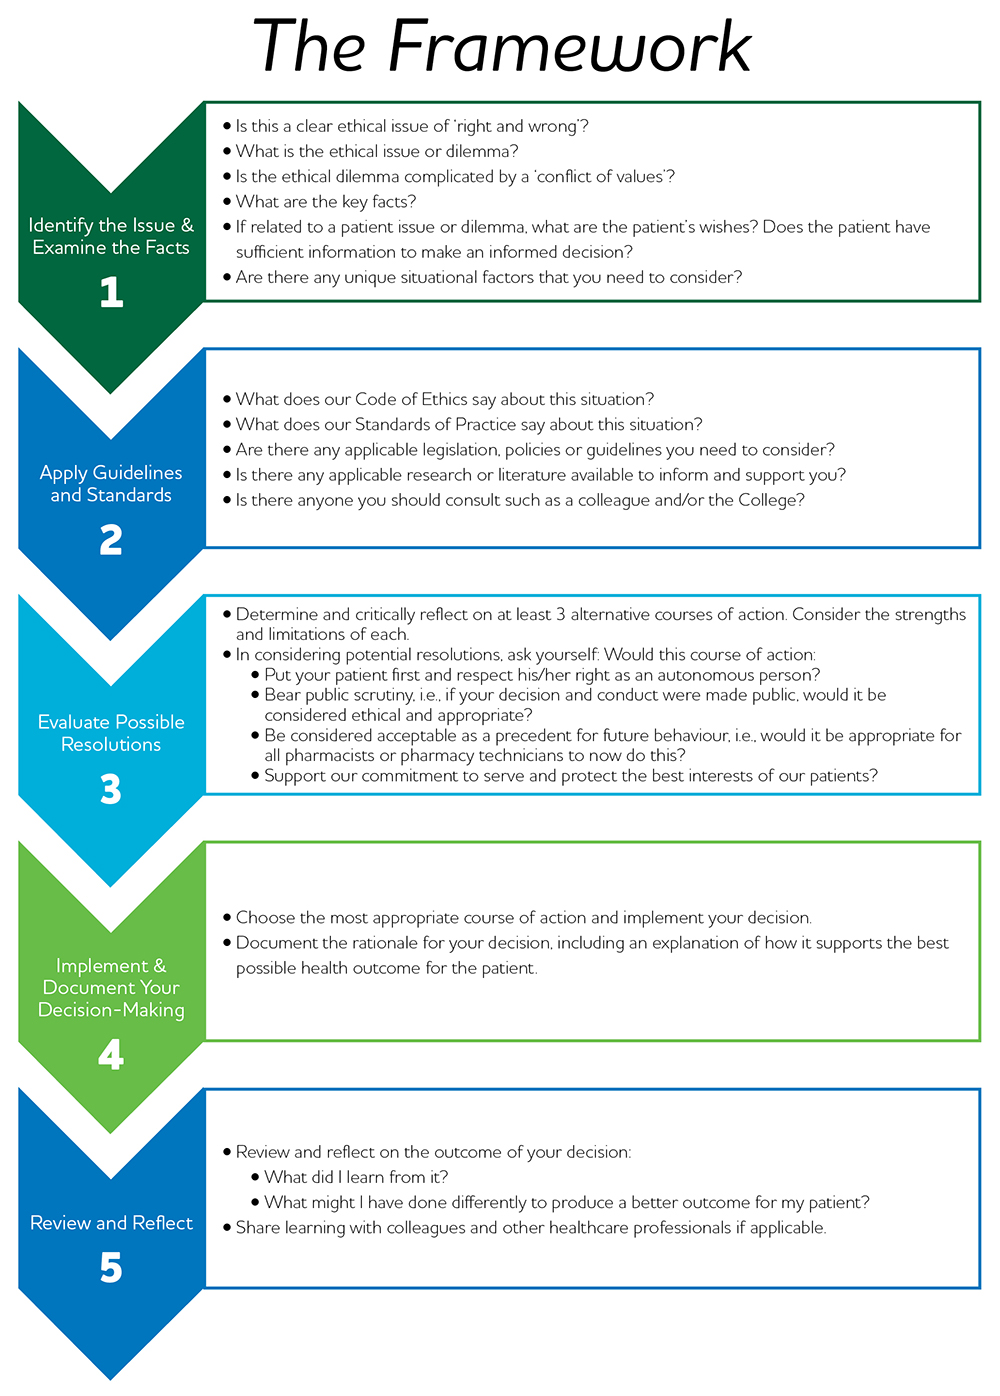 ethical decision-making steps